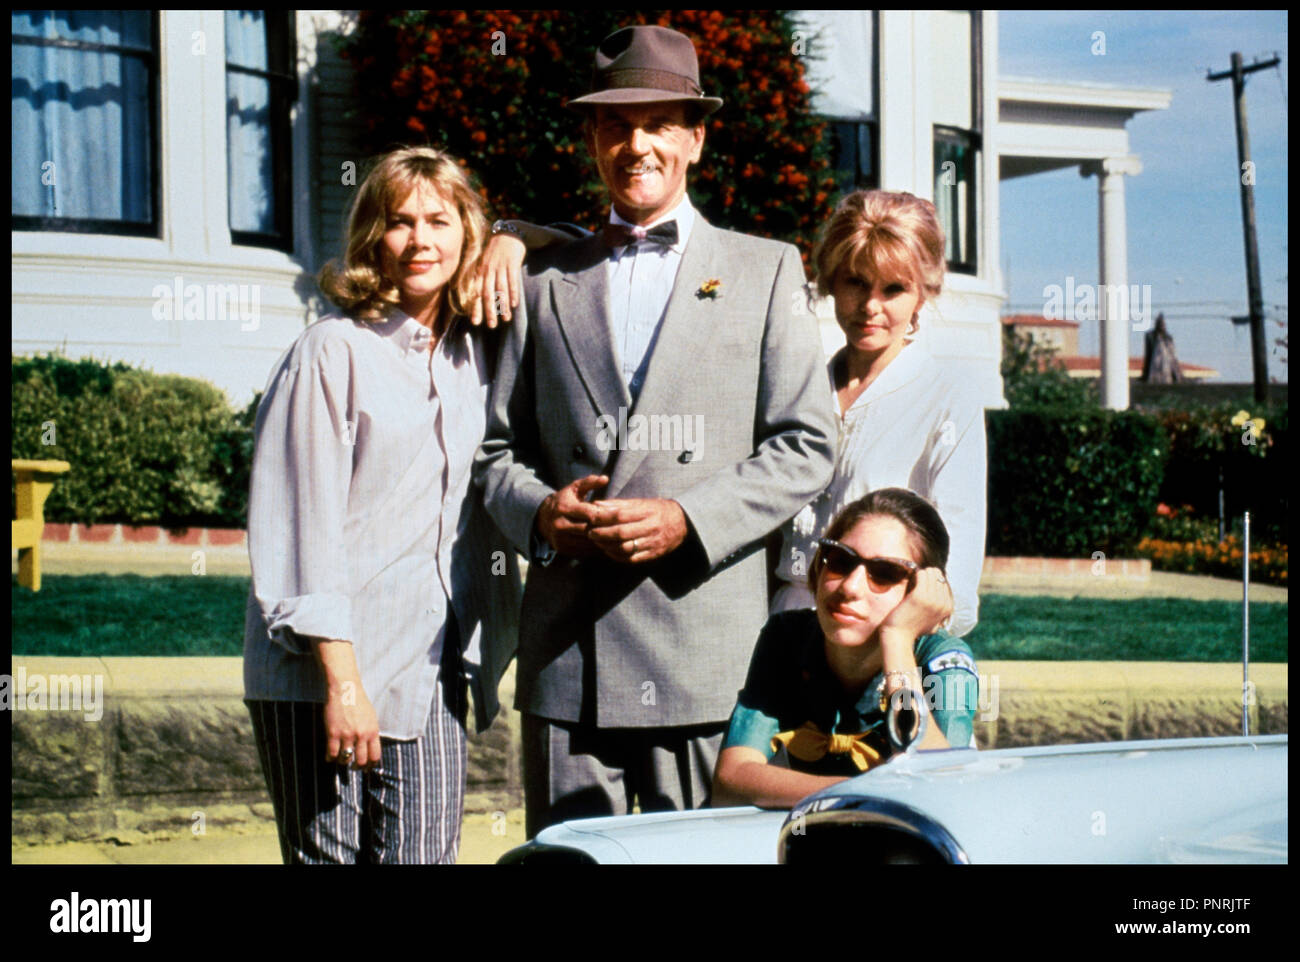 Prod DB © Tristar / DR PEGGY SUE S'EST MARIEE (PEGGY SUE GOT MARRIED) de Francis Ford Coppola 1986 USA avec Kathleen Turner, Don Murray, Barbara Harris et Sofia Coppola famille - Stock Image